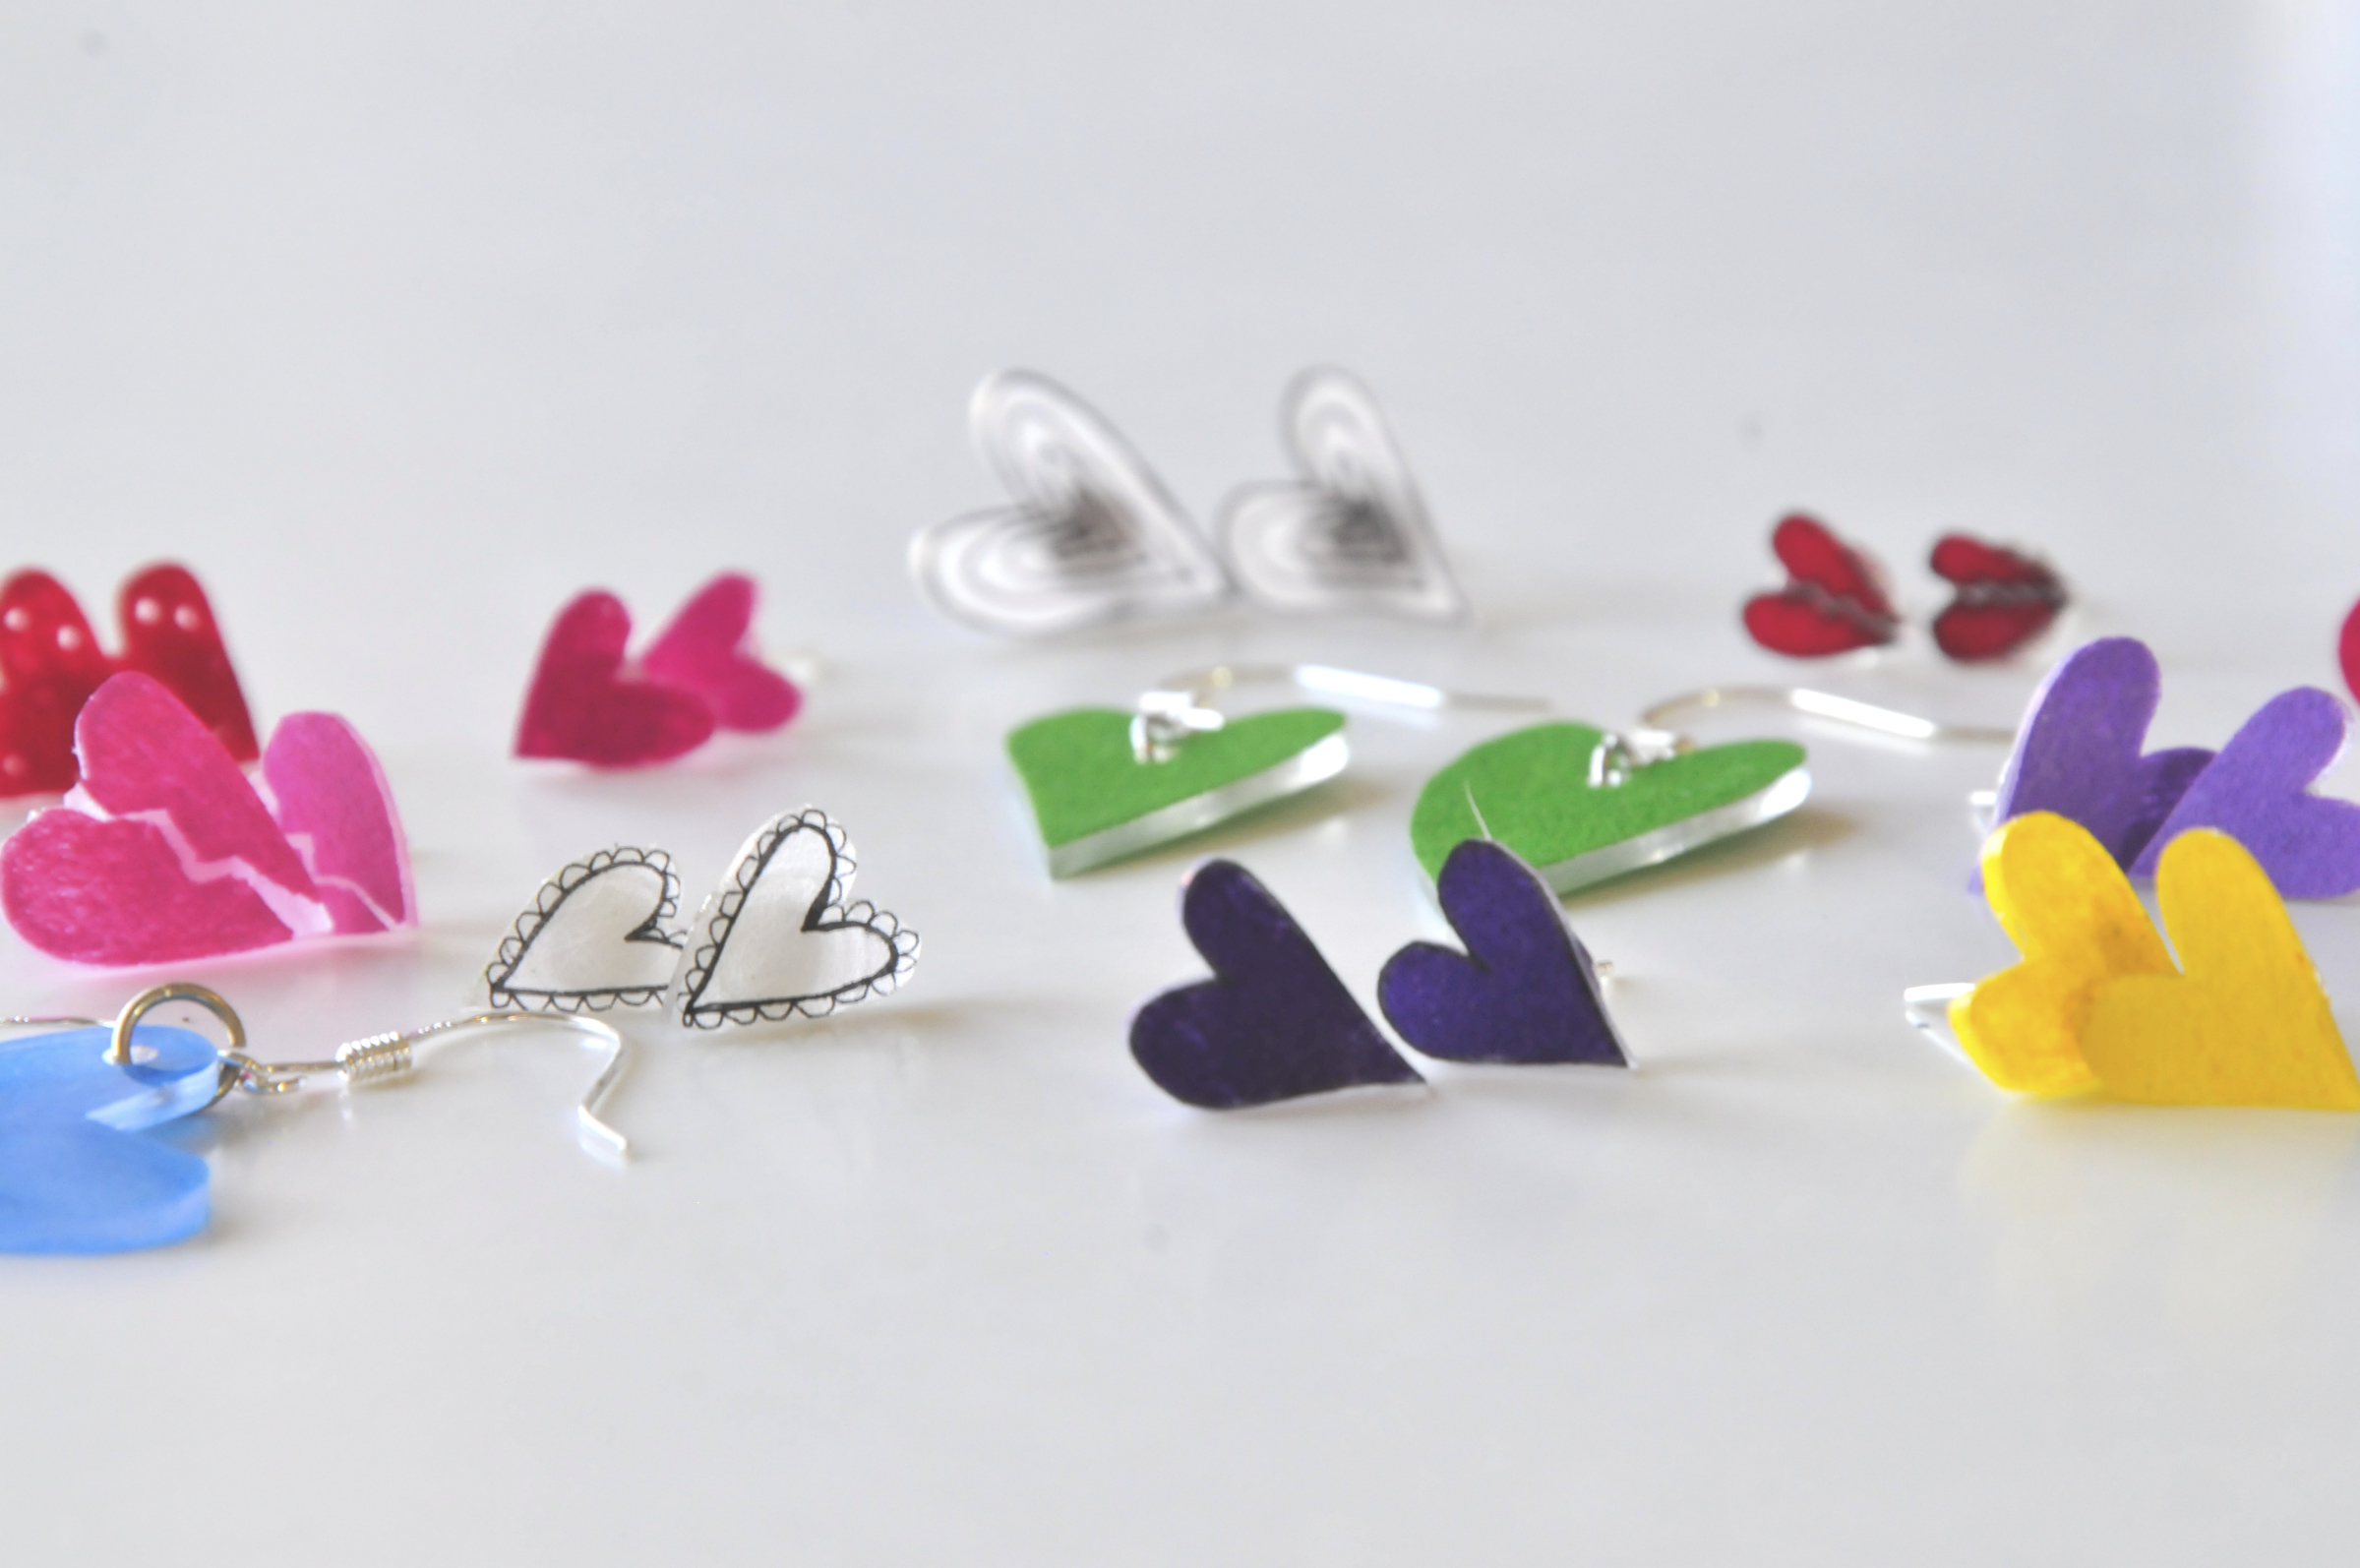 Hero How to Make Heart Earrings Rainbow Earrings Pop Shop America Design Shop